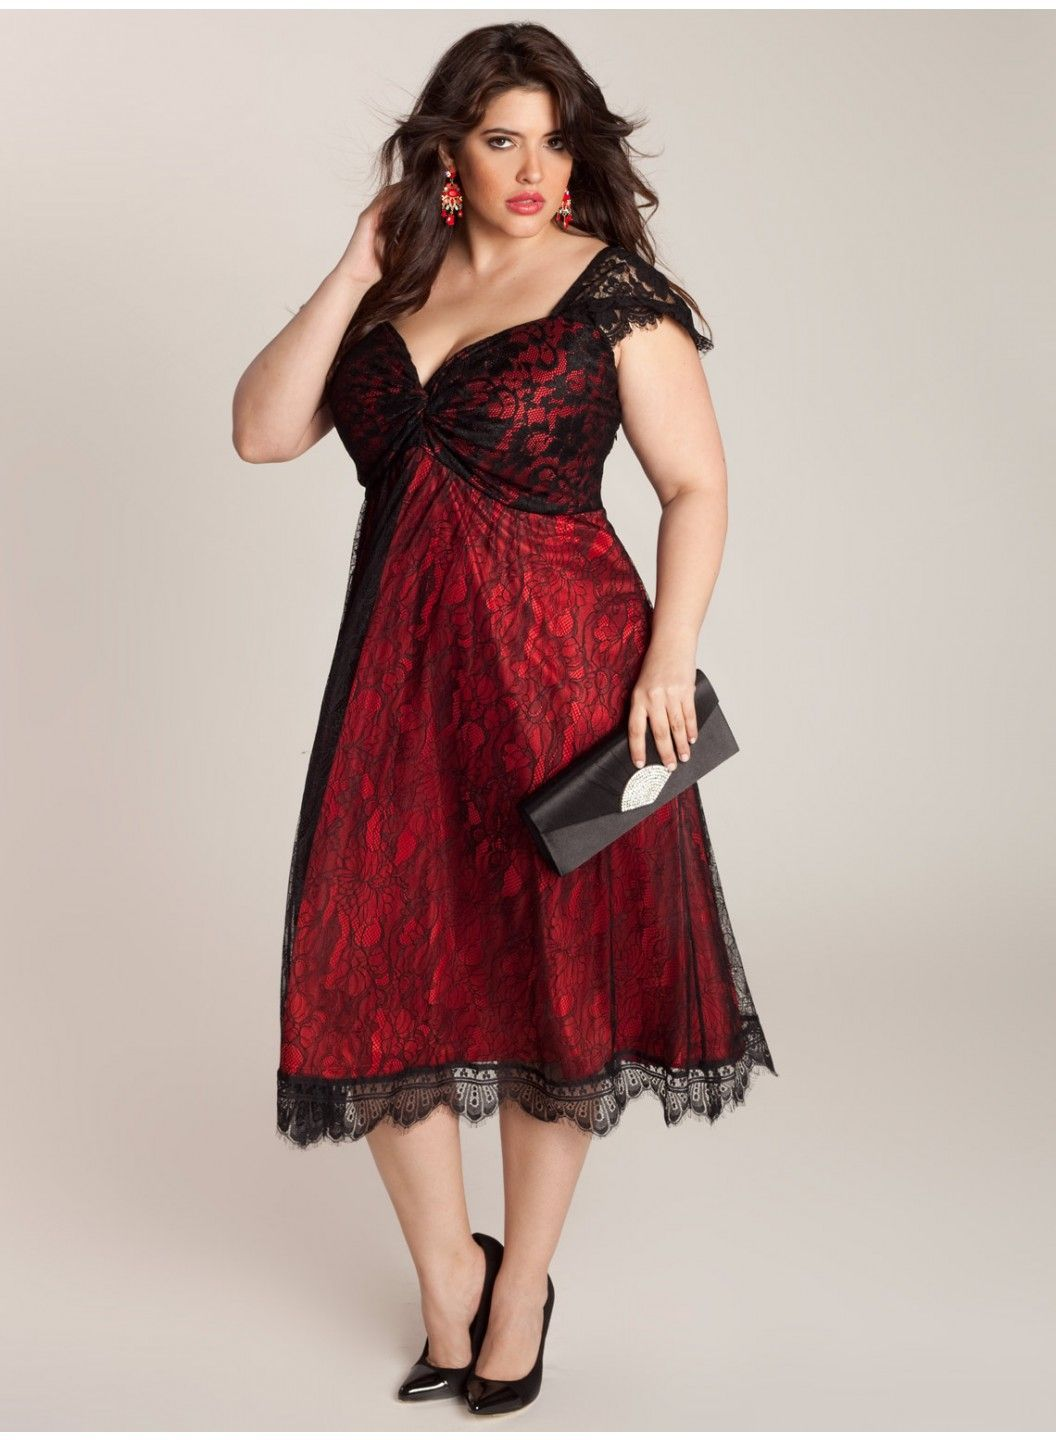 Pin on Plus size work outfits